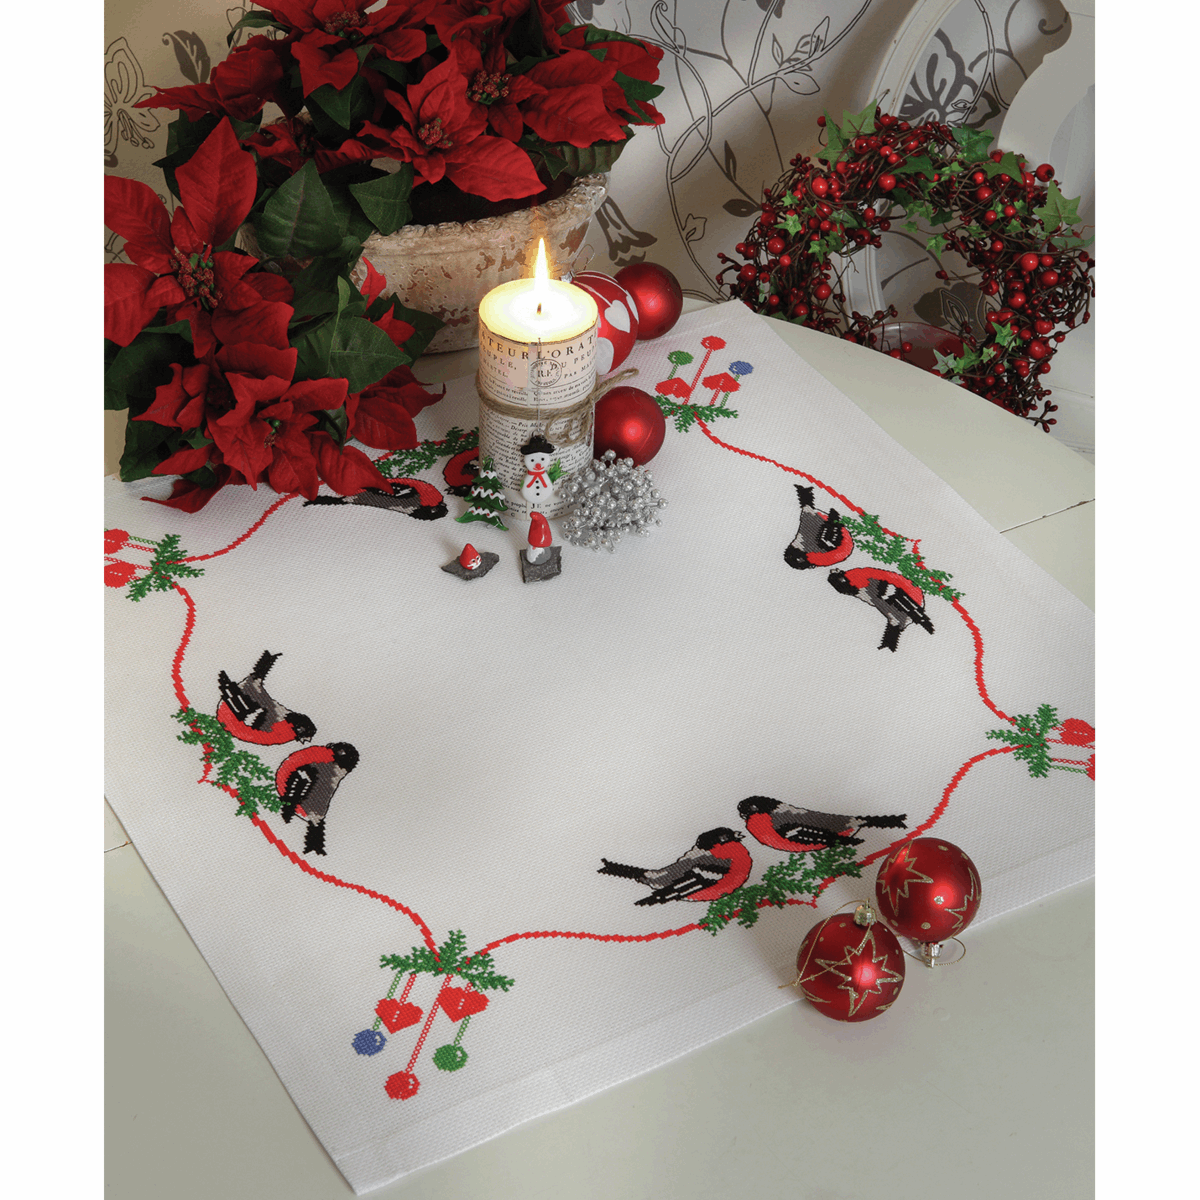 Anchor Cross Stitch Kit - Bullfinches and Christmas Decorations Tablecloth